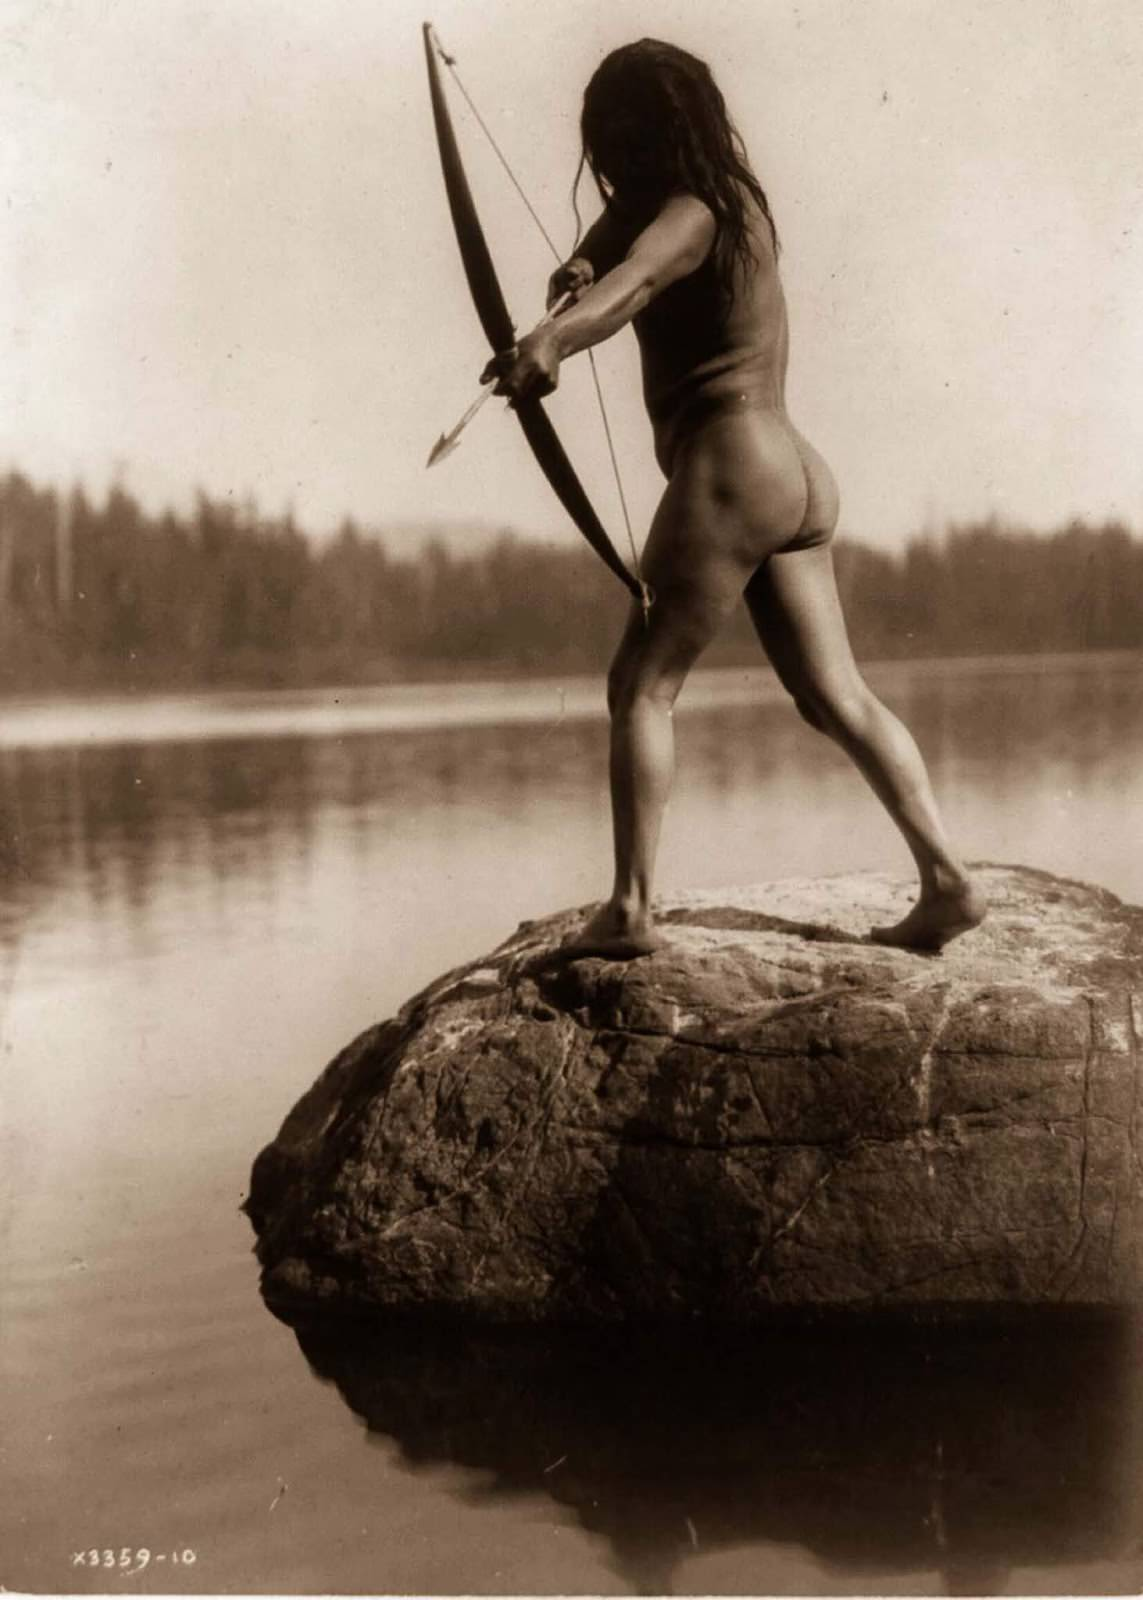 A Nootka man aims a bow and arrow. 1910.